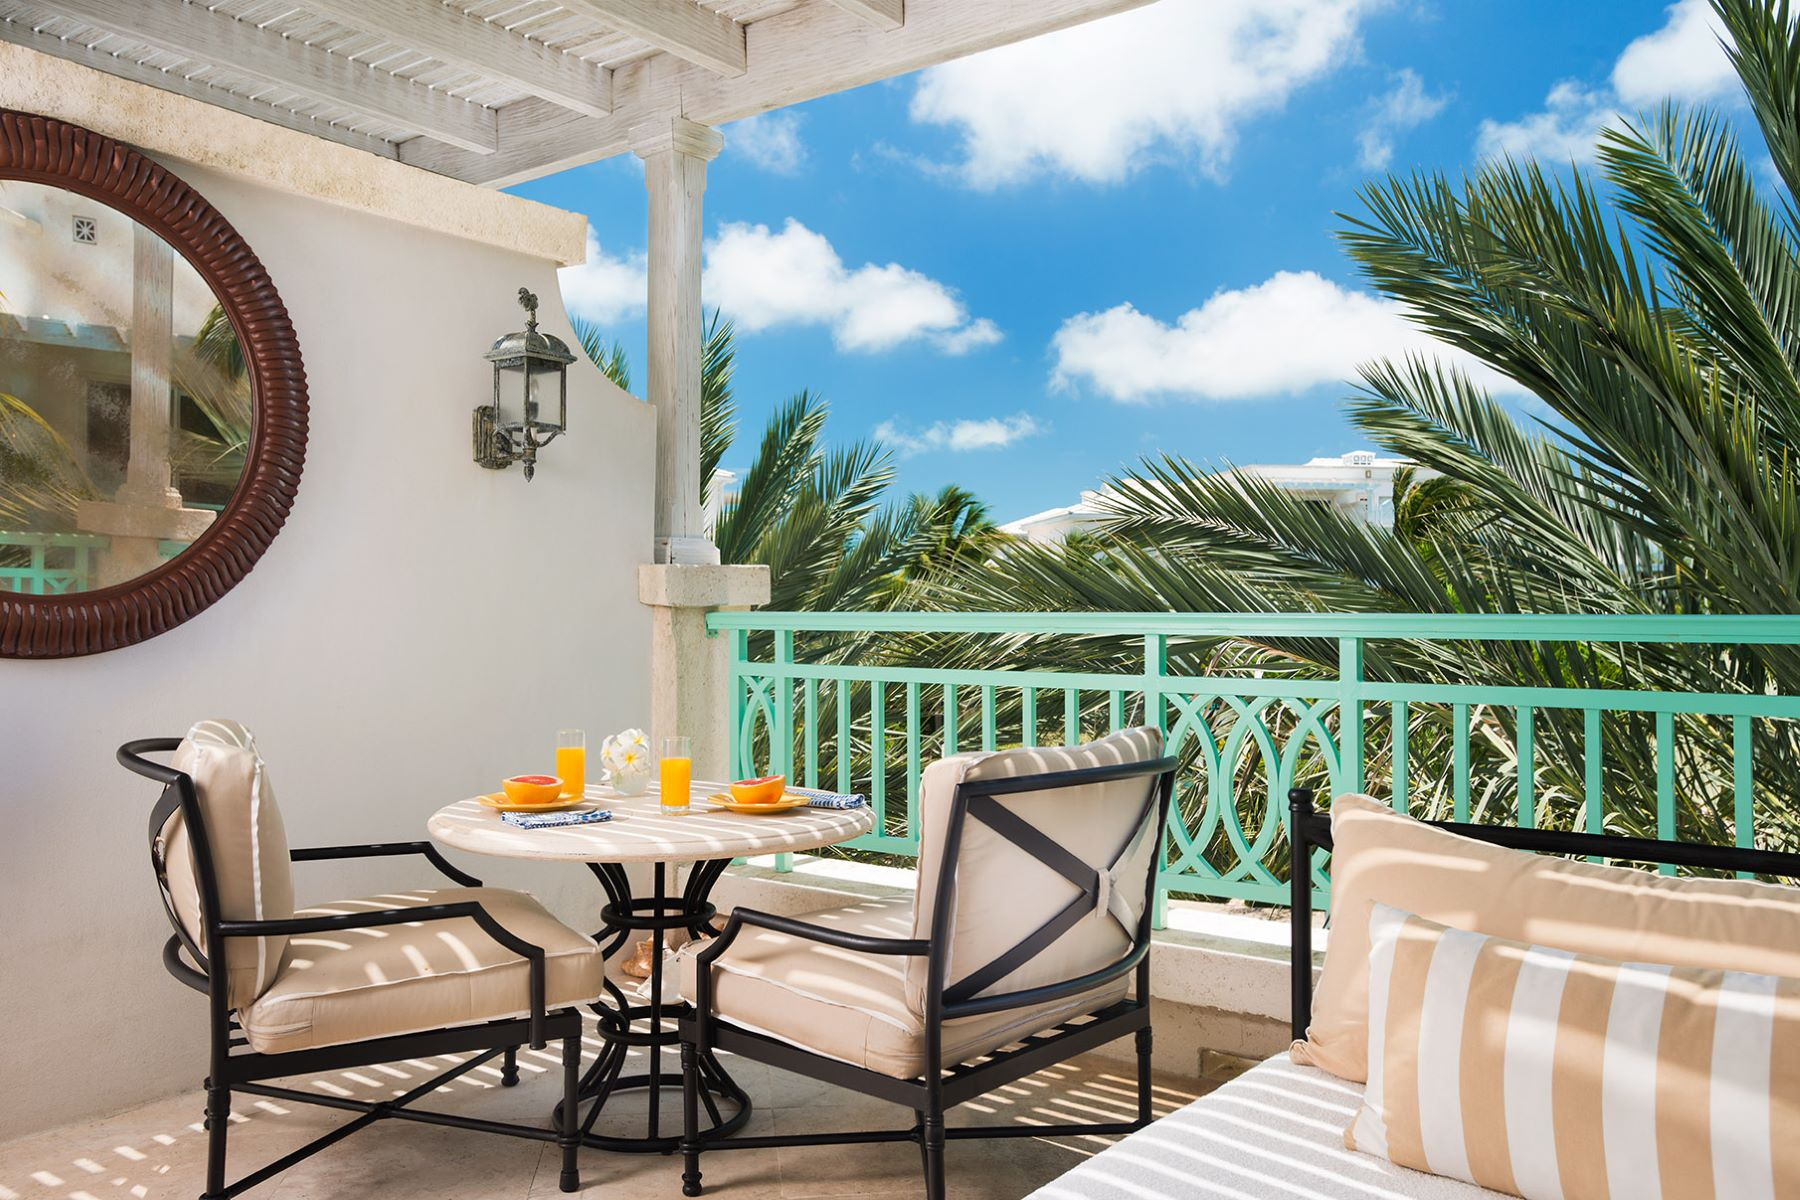 Condominium for Sale at The Palms - Suite 2401.02 The Regent Palms, Grace Bay, Providenciales Turks And Caicos Islands